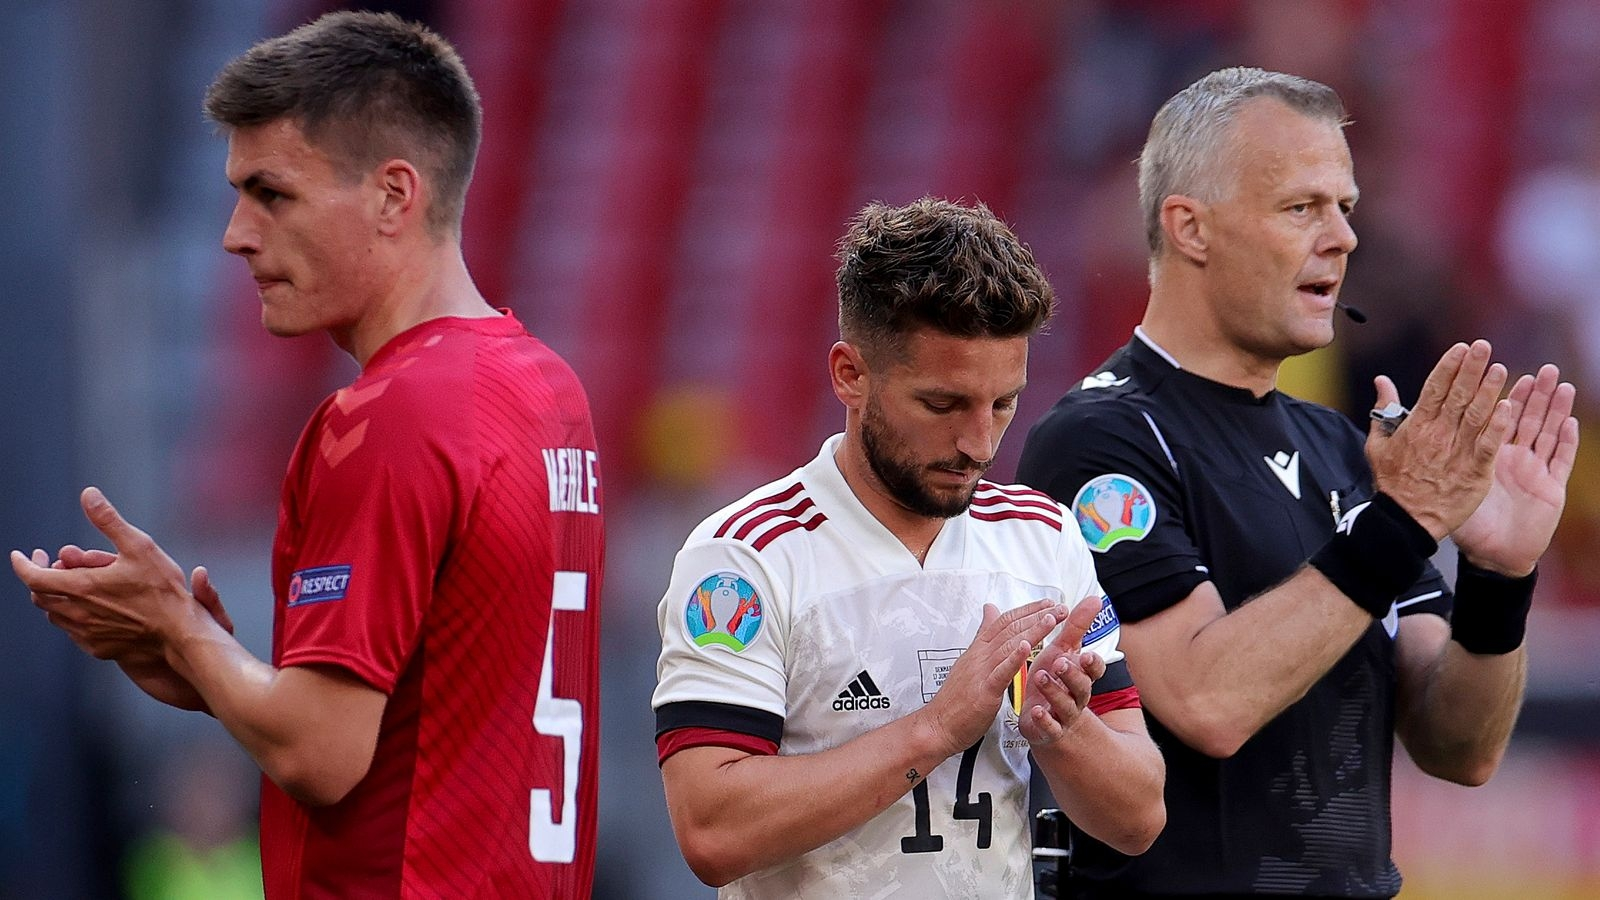 EURO 2020 today updates (June 18): Results, Table & Standings, Fixtures and Points